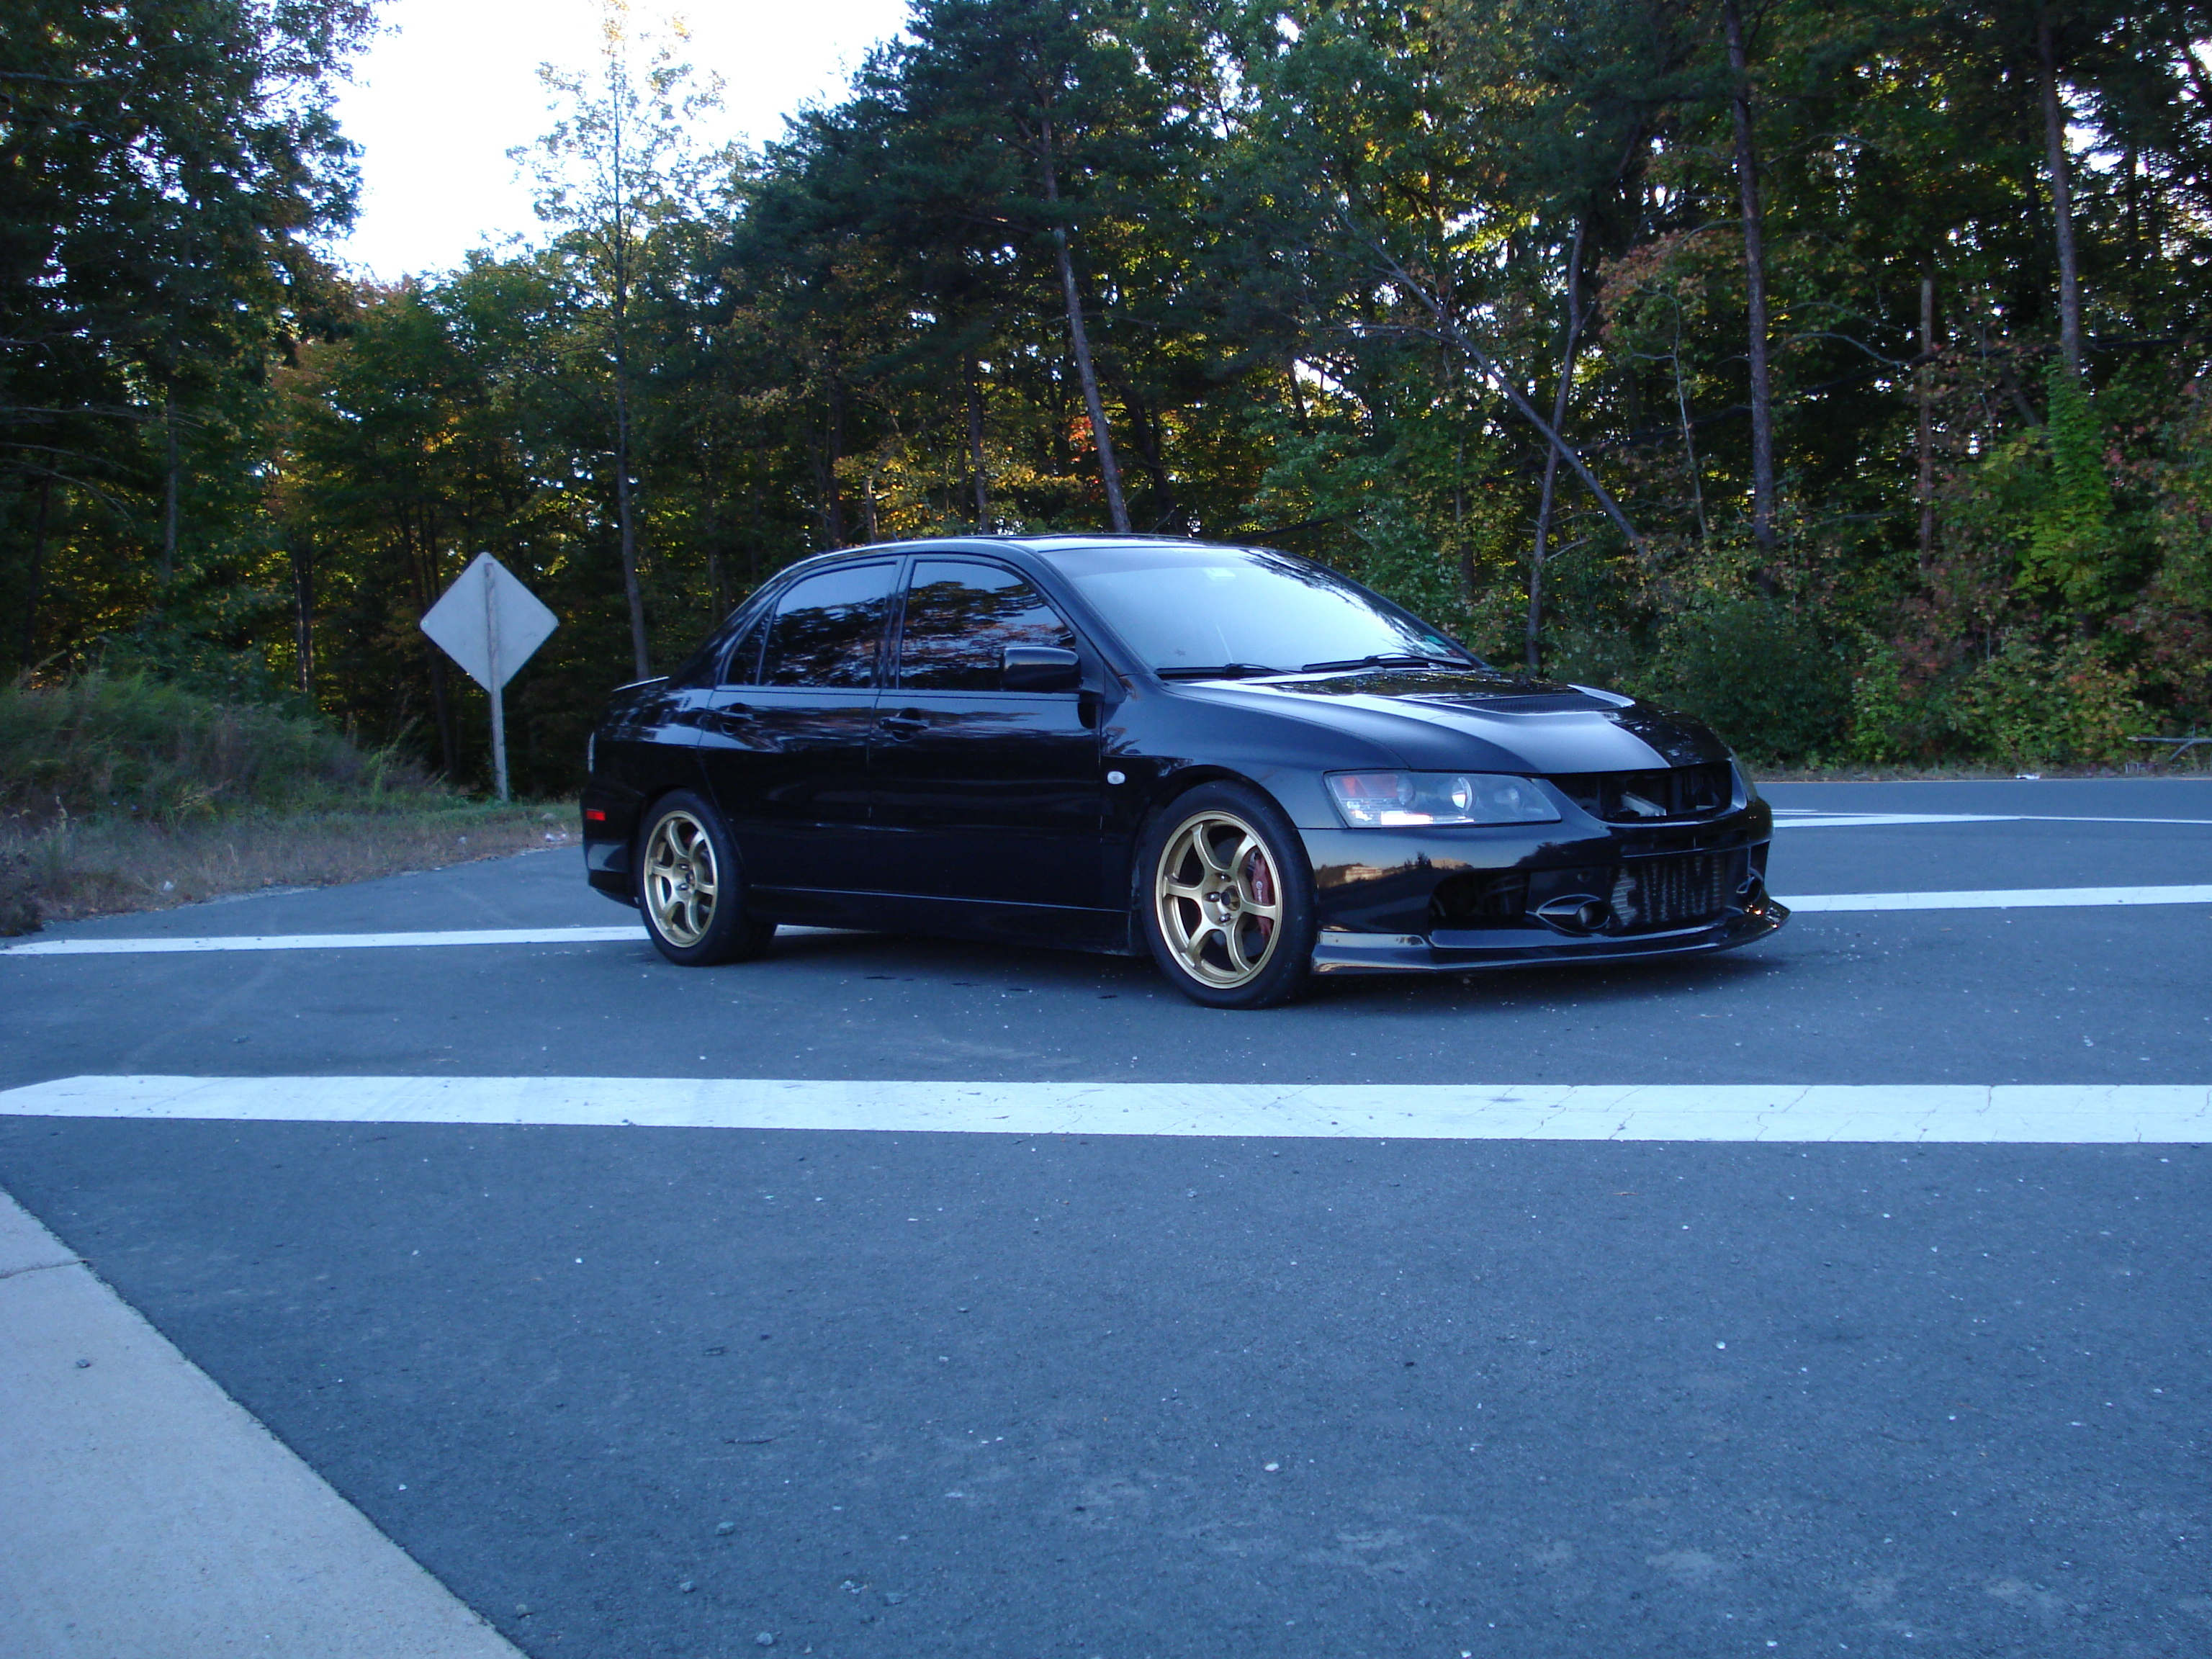 Another Assassyn_00 2003 Mitsubishi Lancer post... - 9928566